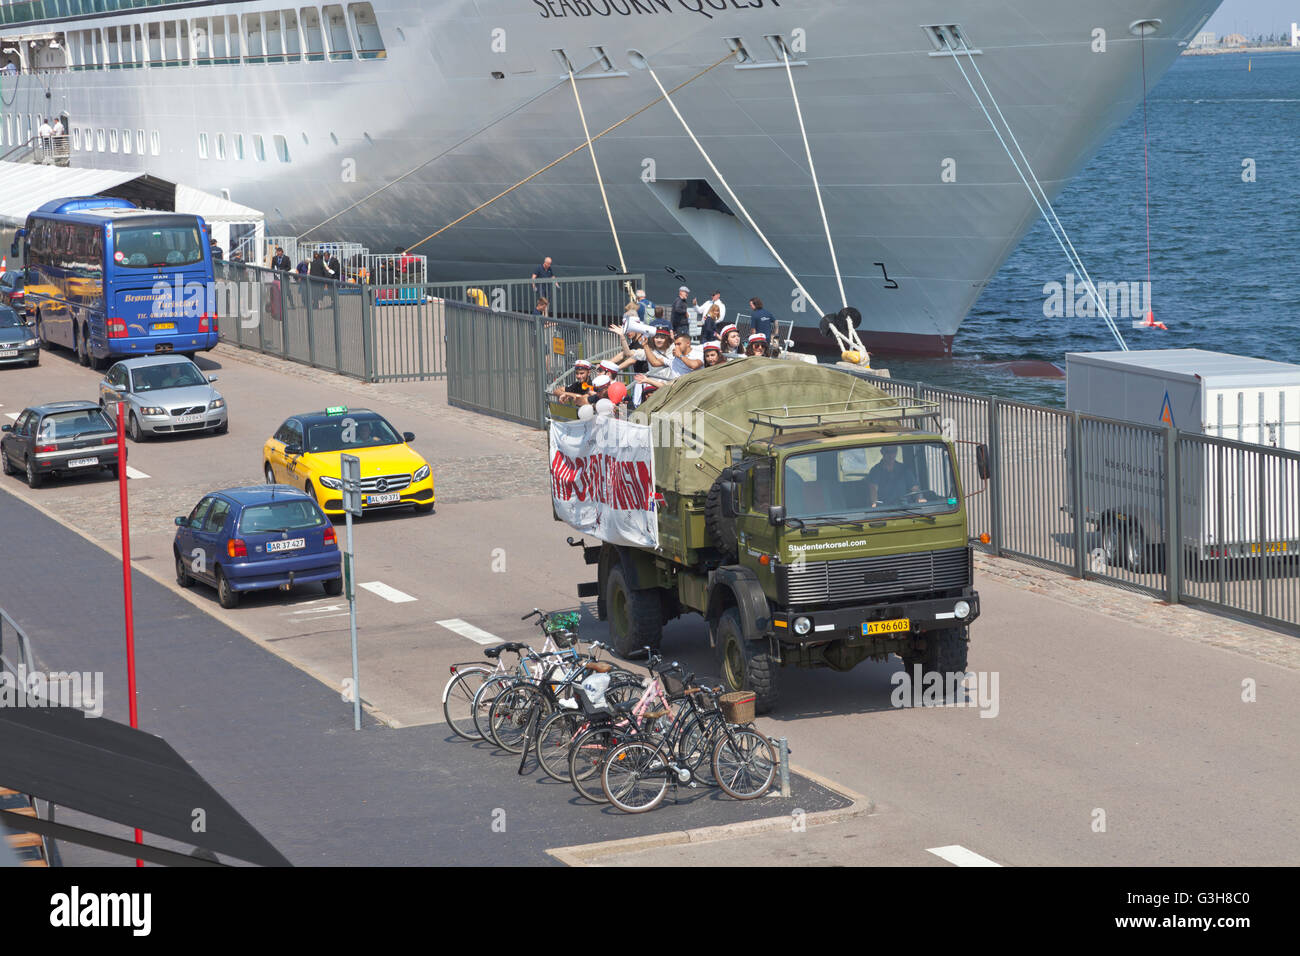 Copenhagen Harbour, Denmark. 25th June, 2016. Loud horns, sirens and hooting and yelling students celebrating their Stock Photo